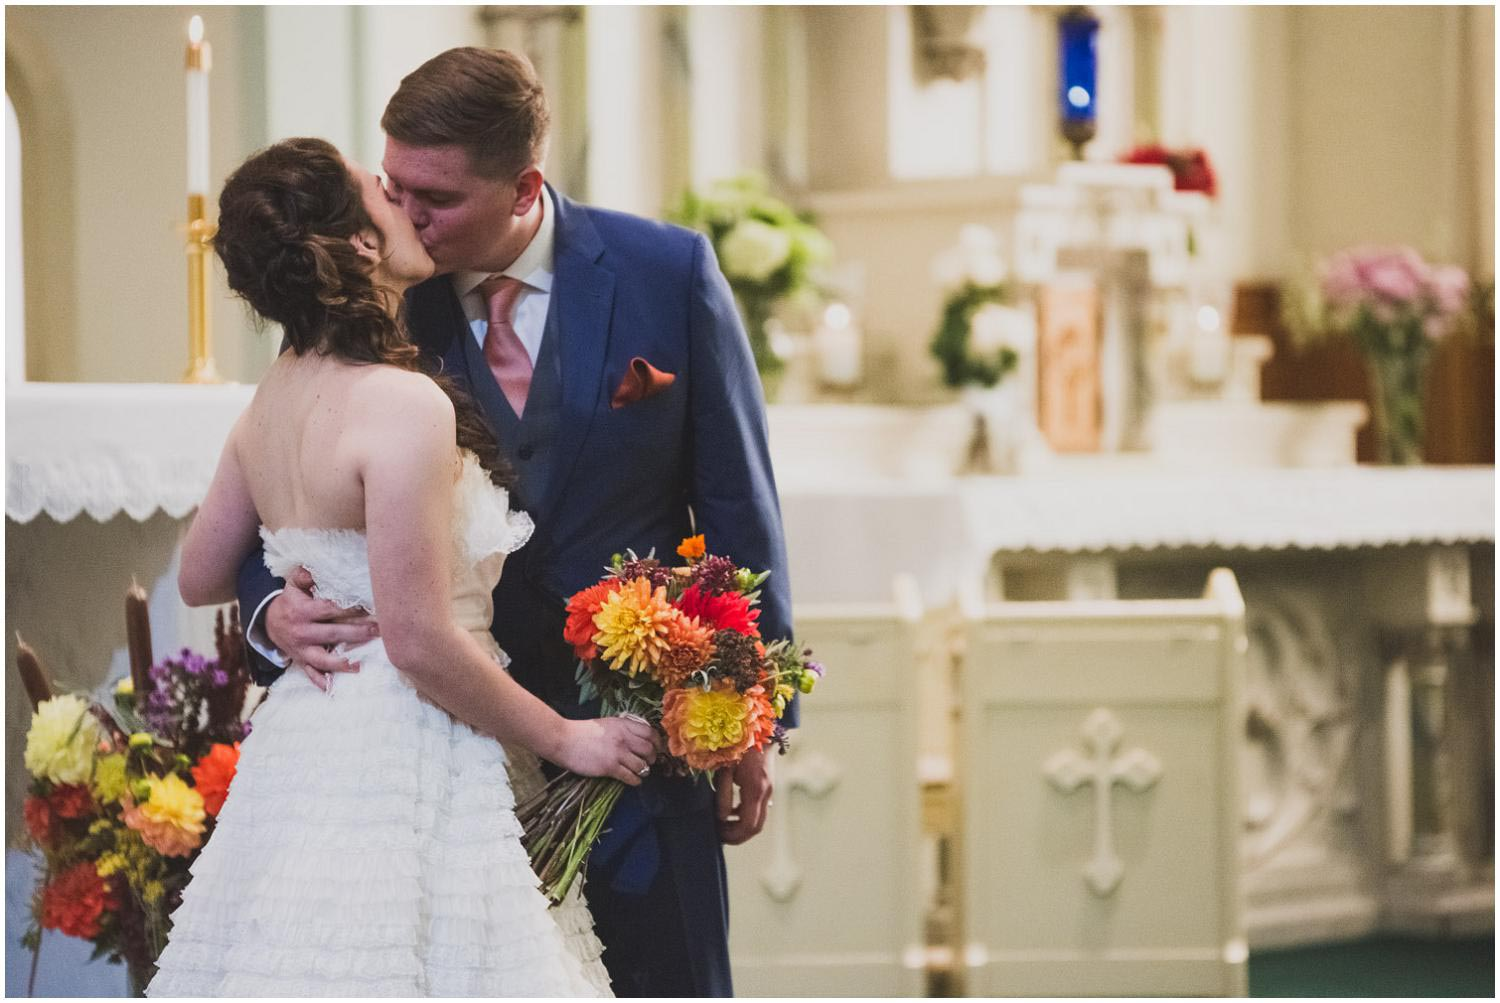 first kiss for bride and groom at the end of their wedding at the historic catholic church in bend oregon